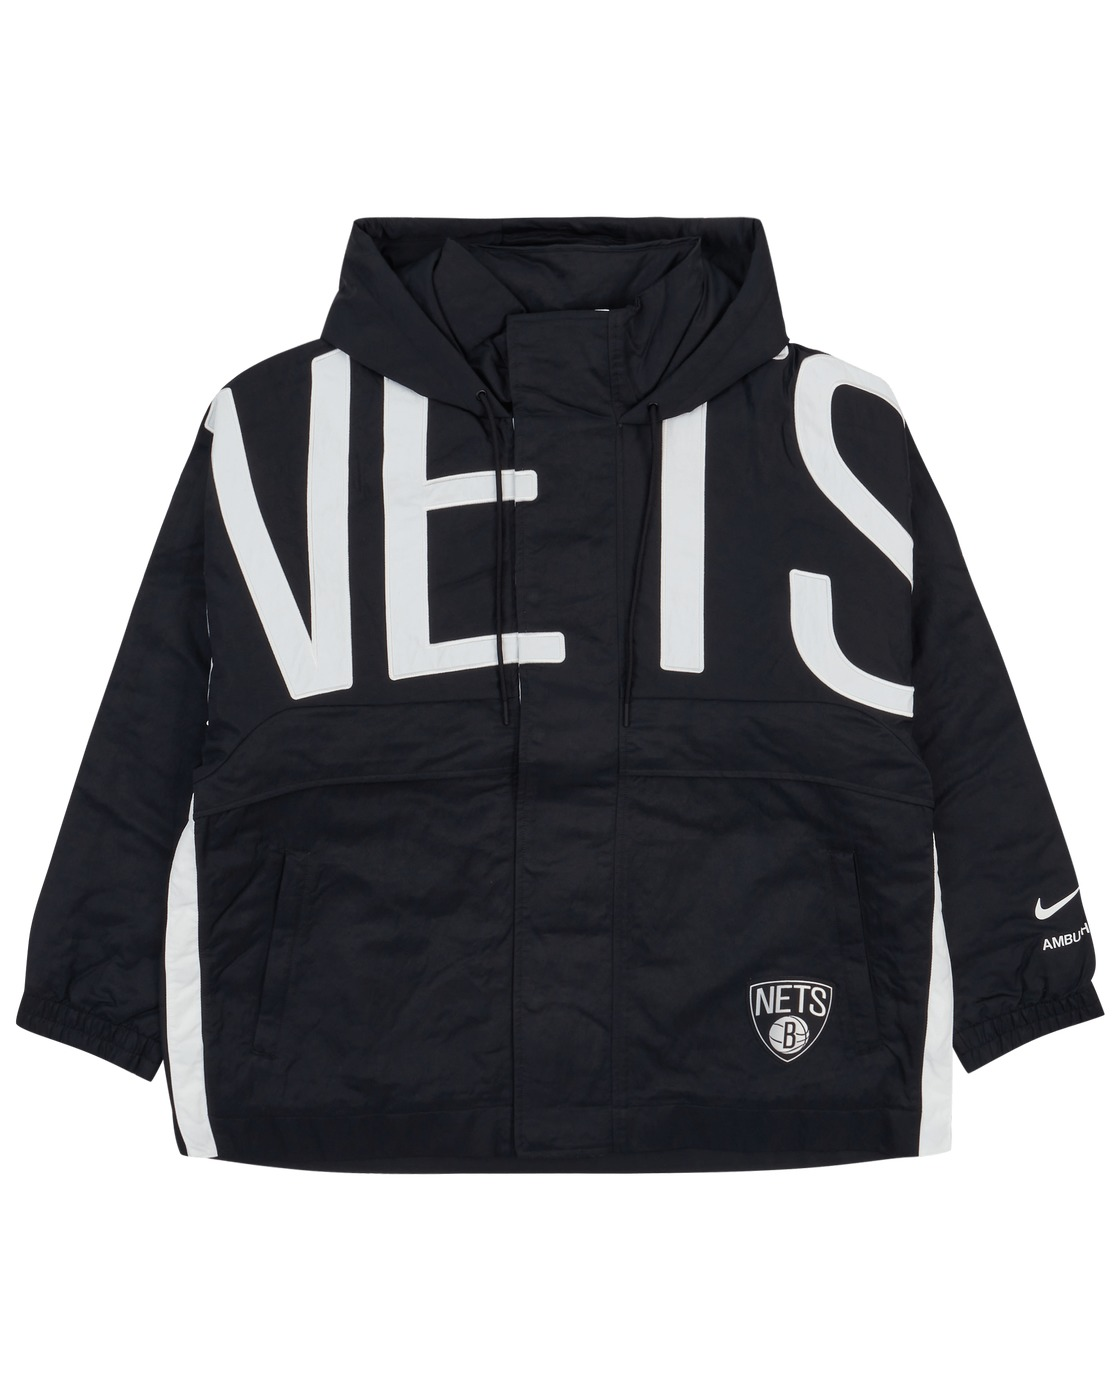 Nike Special Project Ambush Bk Jacket Black